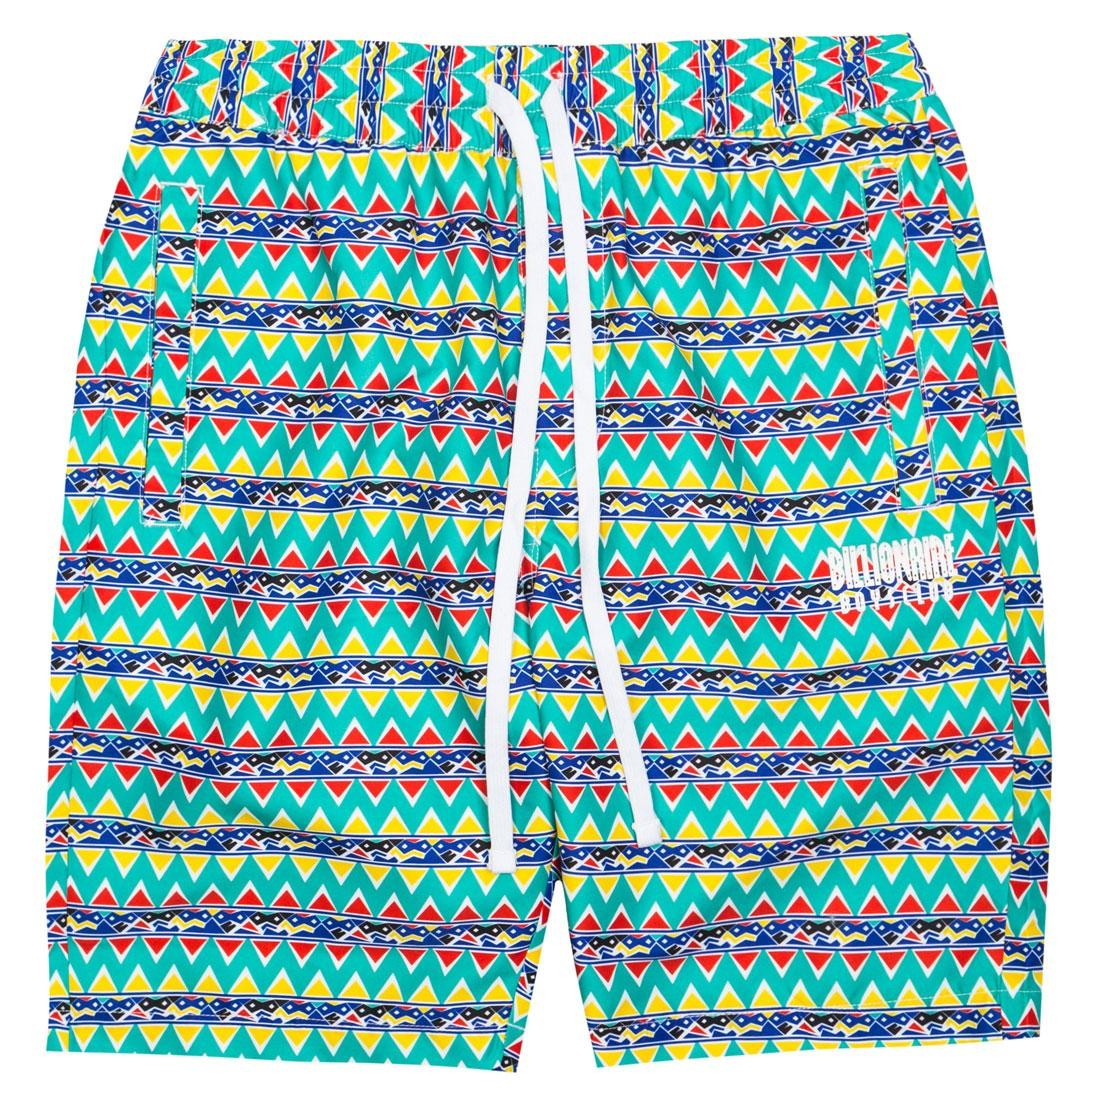 efc8e40afa64 Billionaire Boys Club Men Bel Air Shorts green white pattern